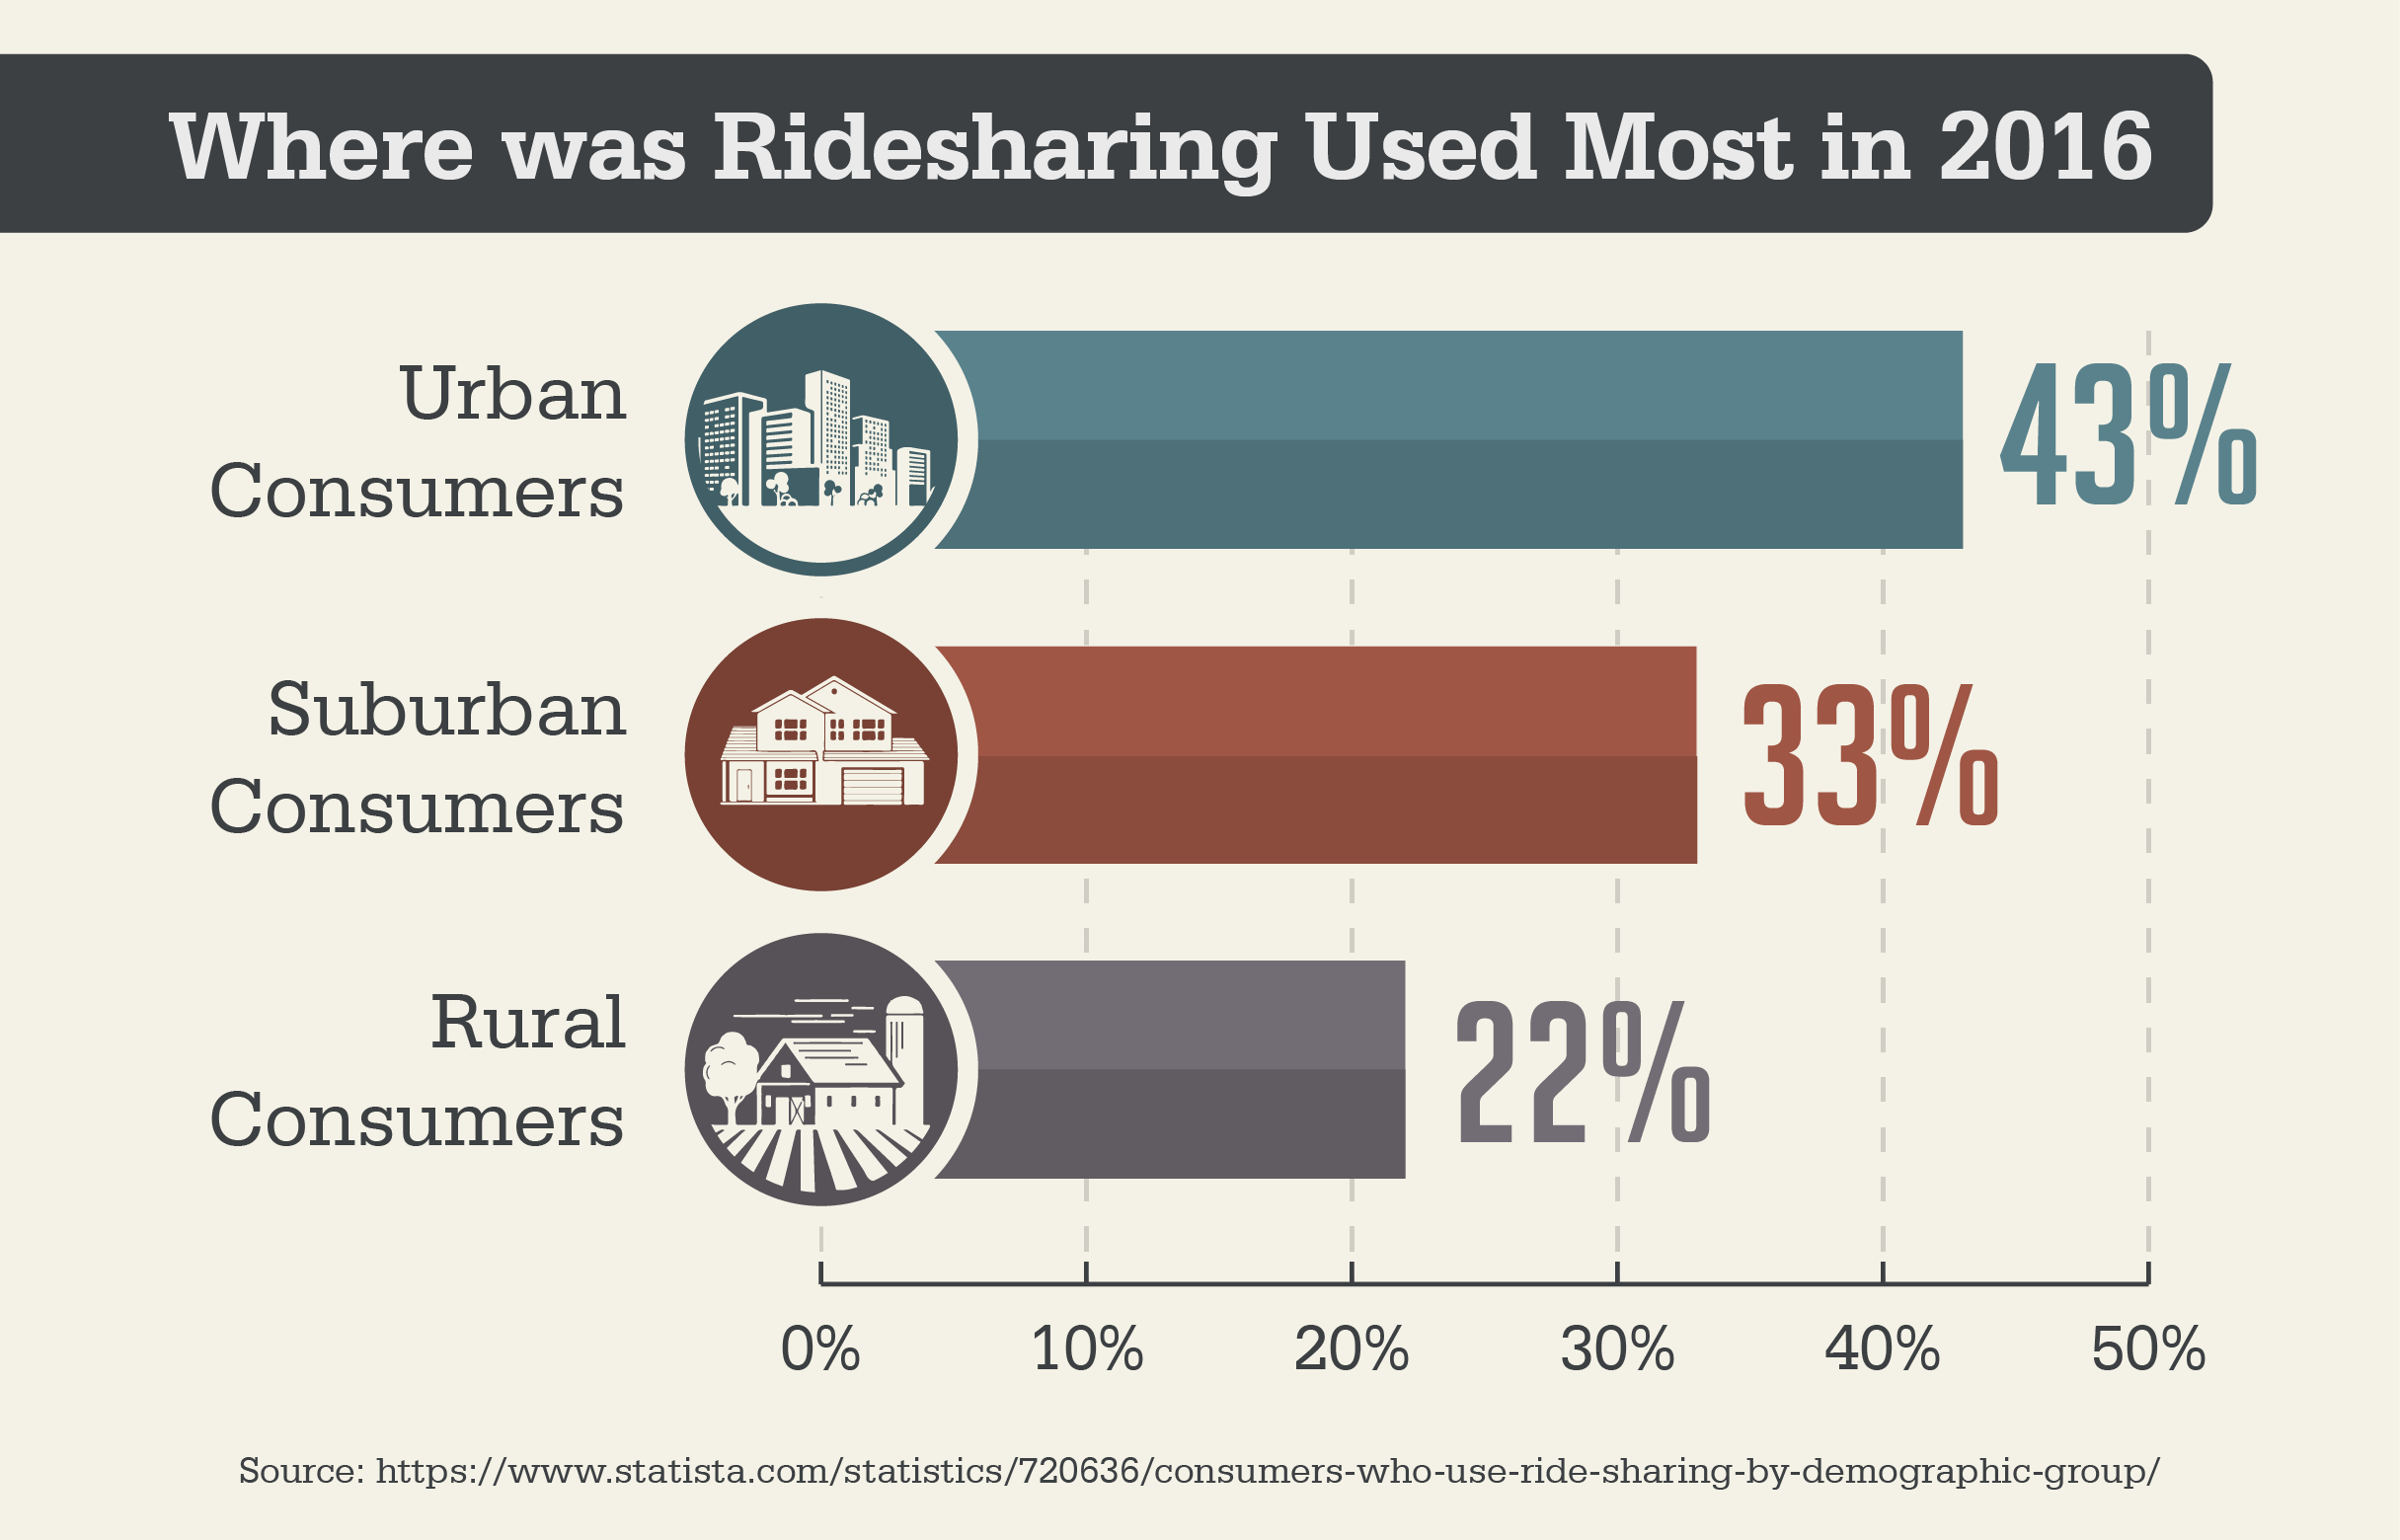 Where was Ridesharing Used Most in 2016?